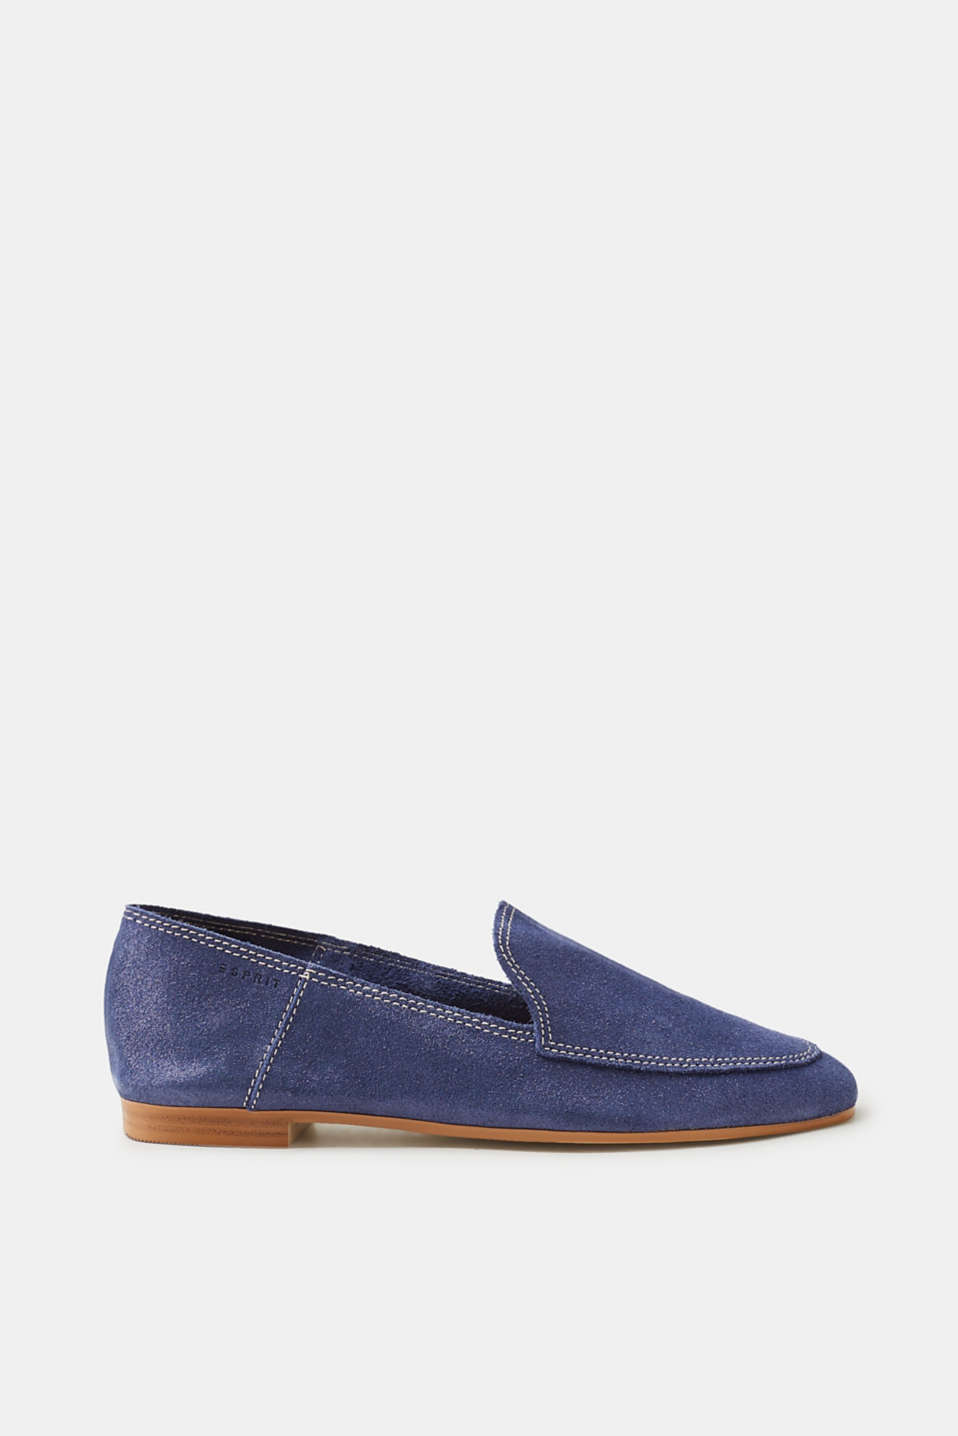 Esprit - Loafers made of brushed-up leather with a glitter finish